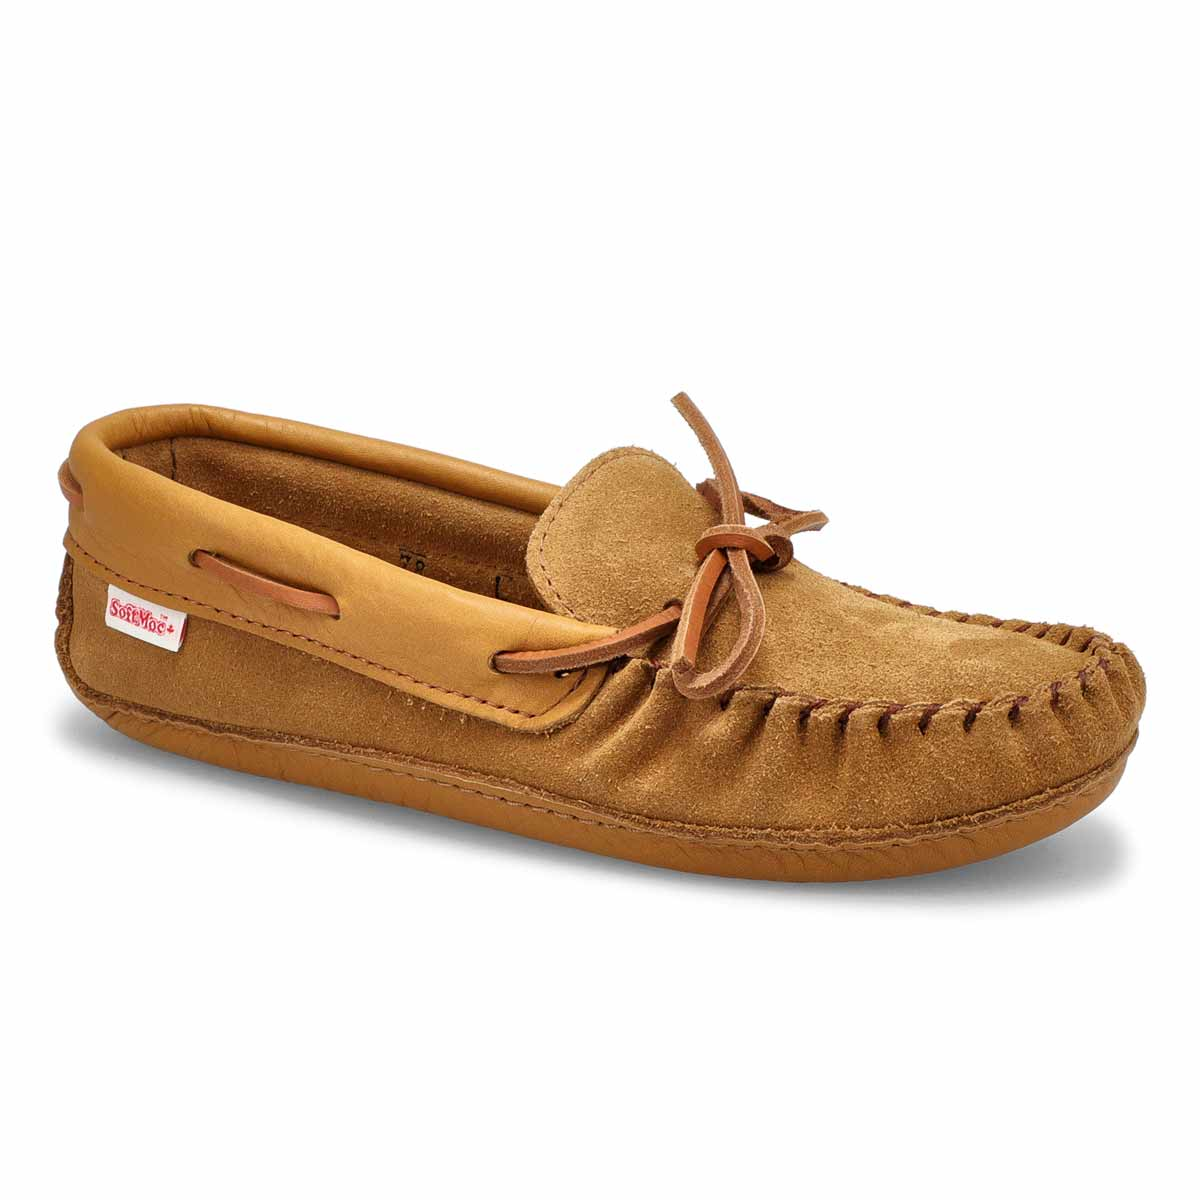 Women's SF78 dark tan memory foam moccasins